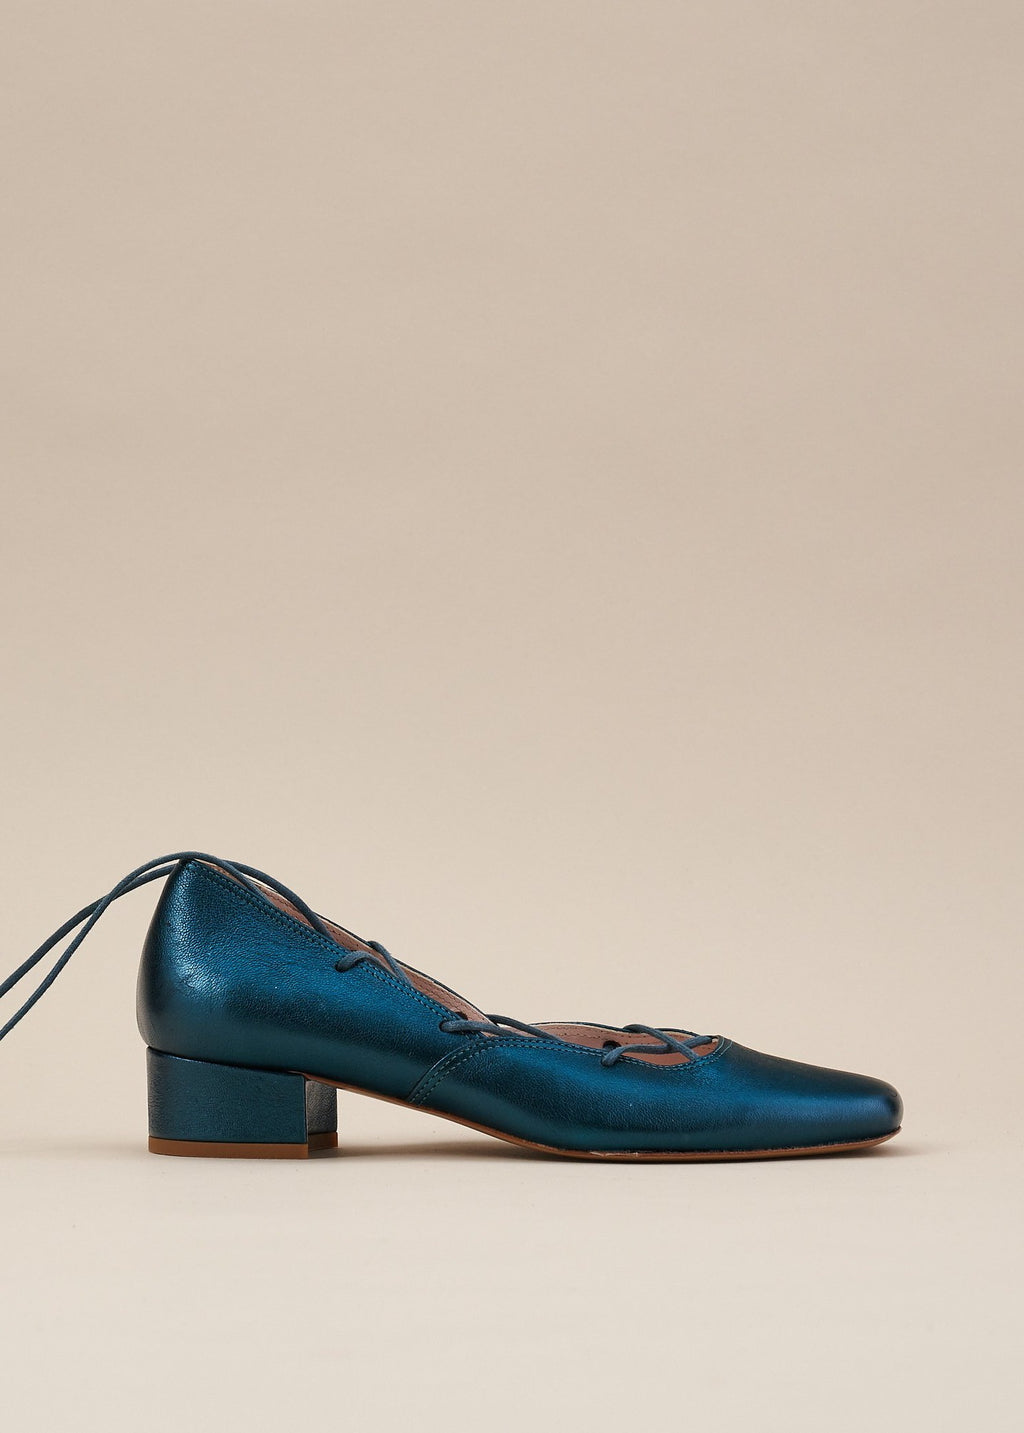 Elinor Teal Metallic Leather Lace-up Ballerina Pump - LAST REMAINING PAIRS